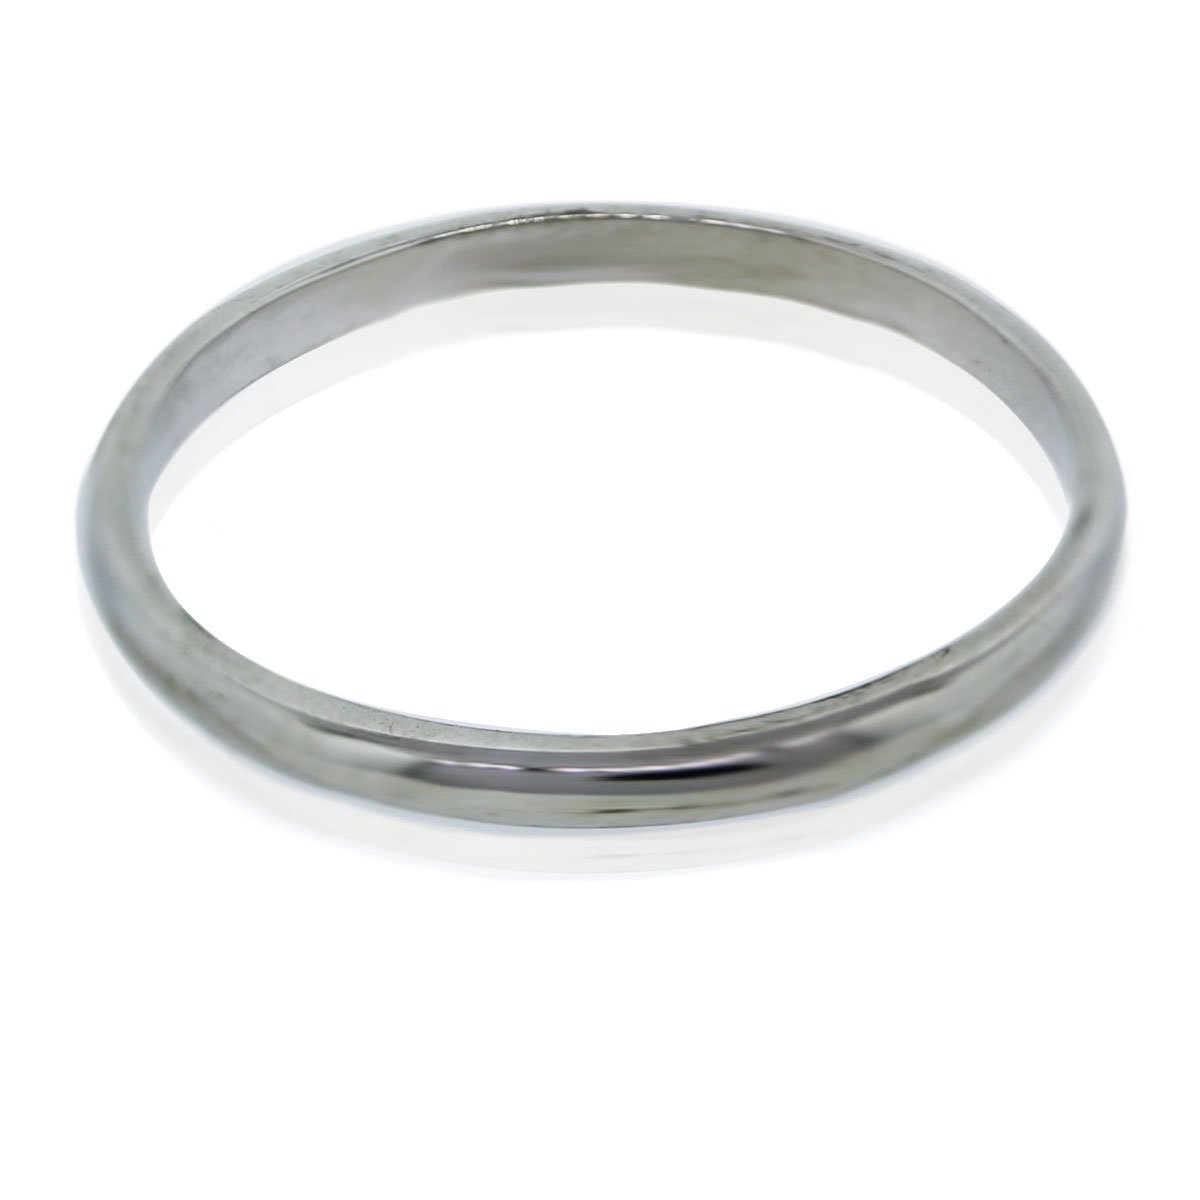 You are veiwing this 14k White Gold Wedding Ring!